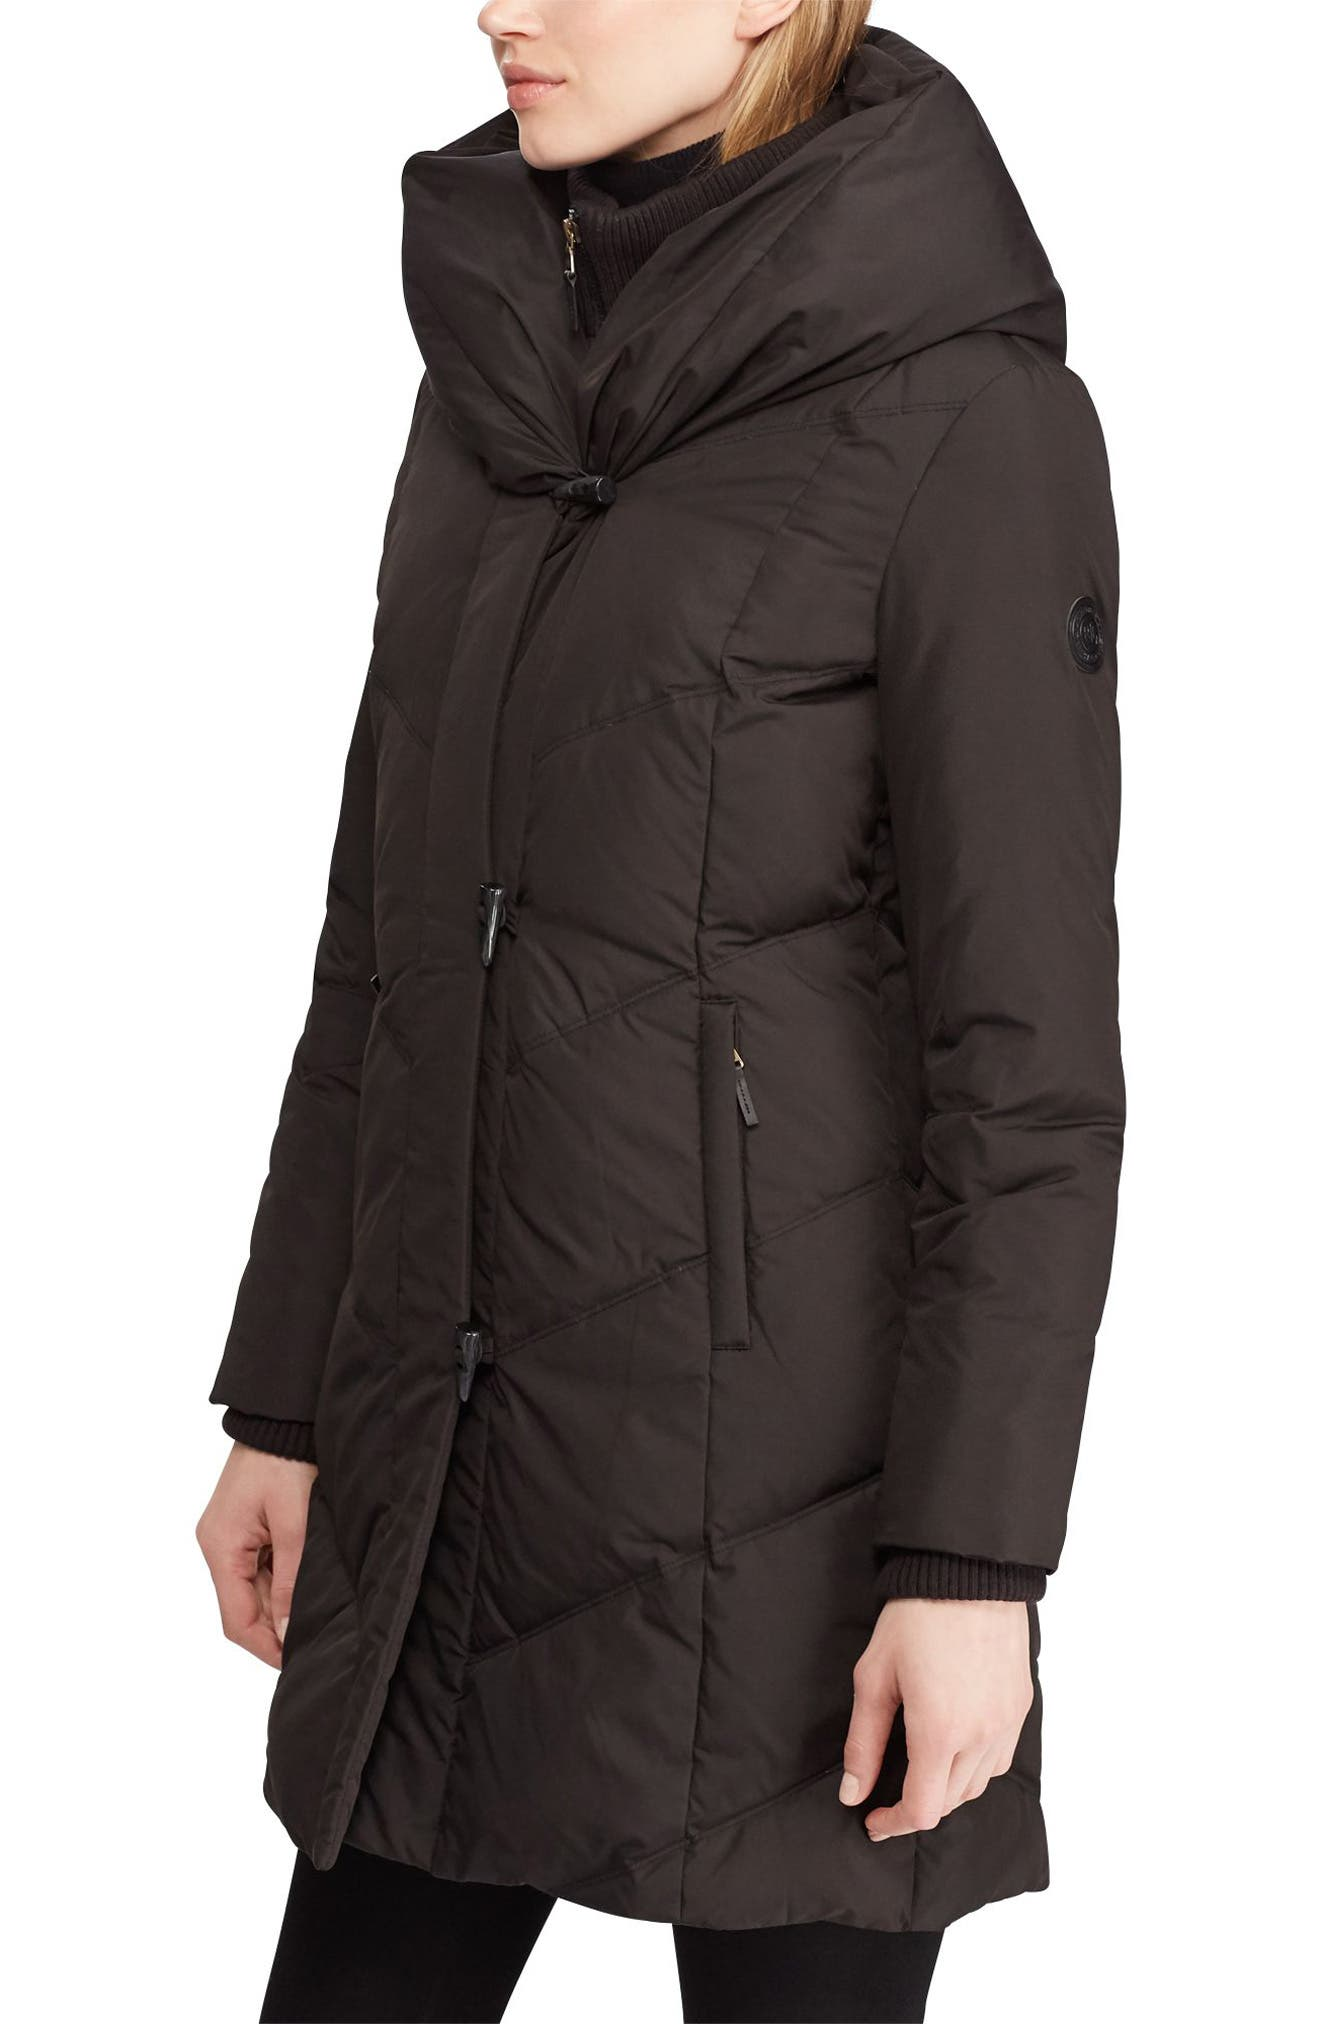 LAUREN RALPH LAUREN, Pillow Hood Quilted Coat, Main thumbnail 1, color, BLACK